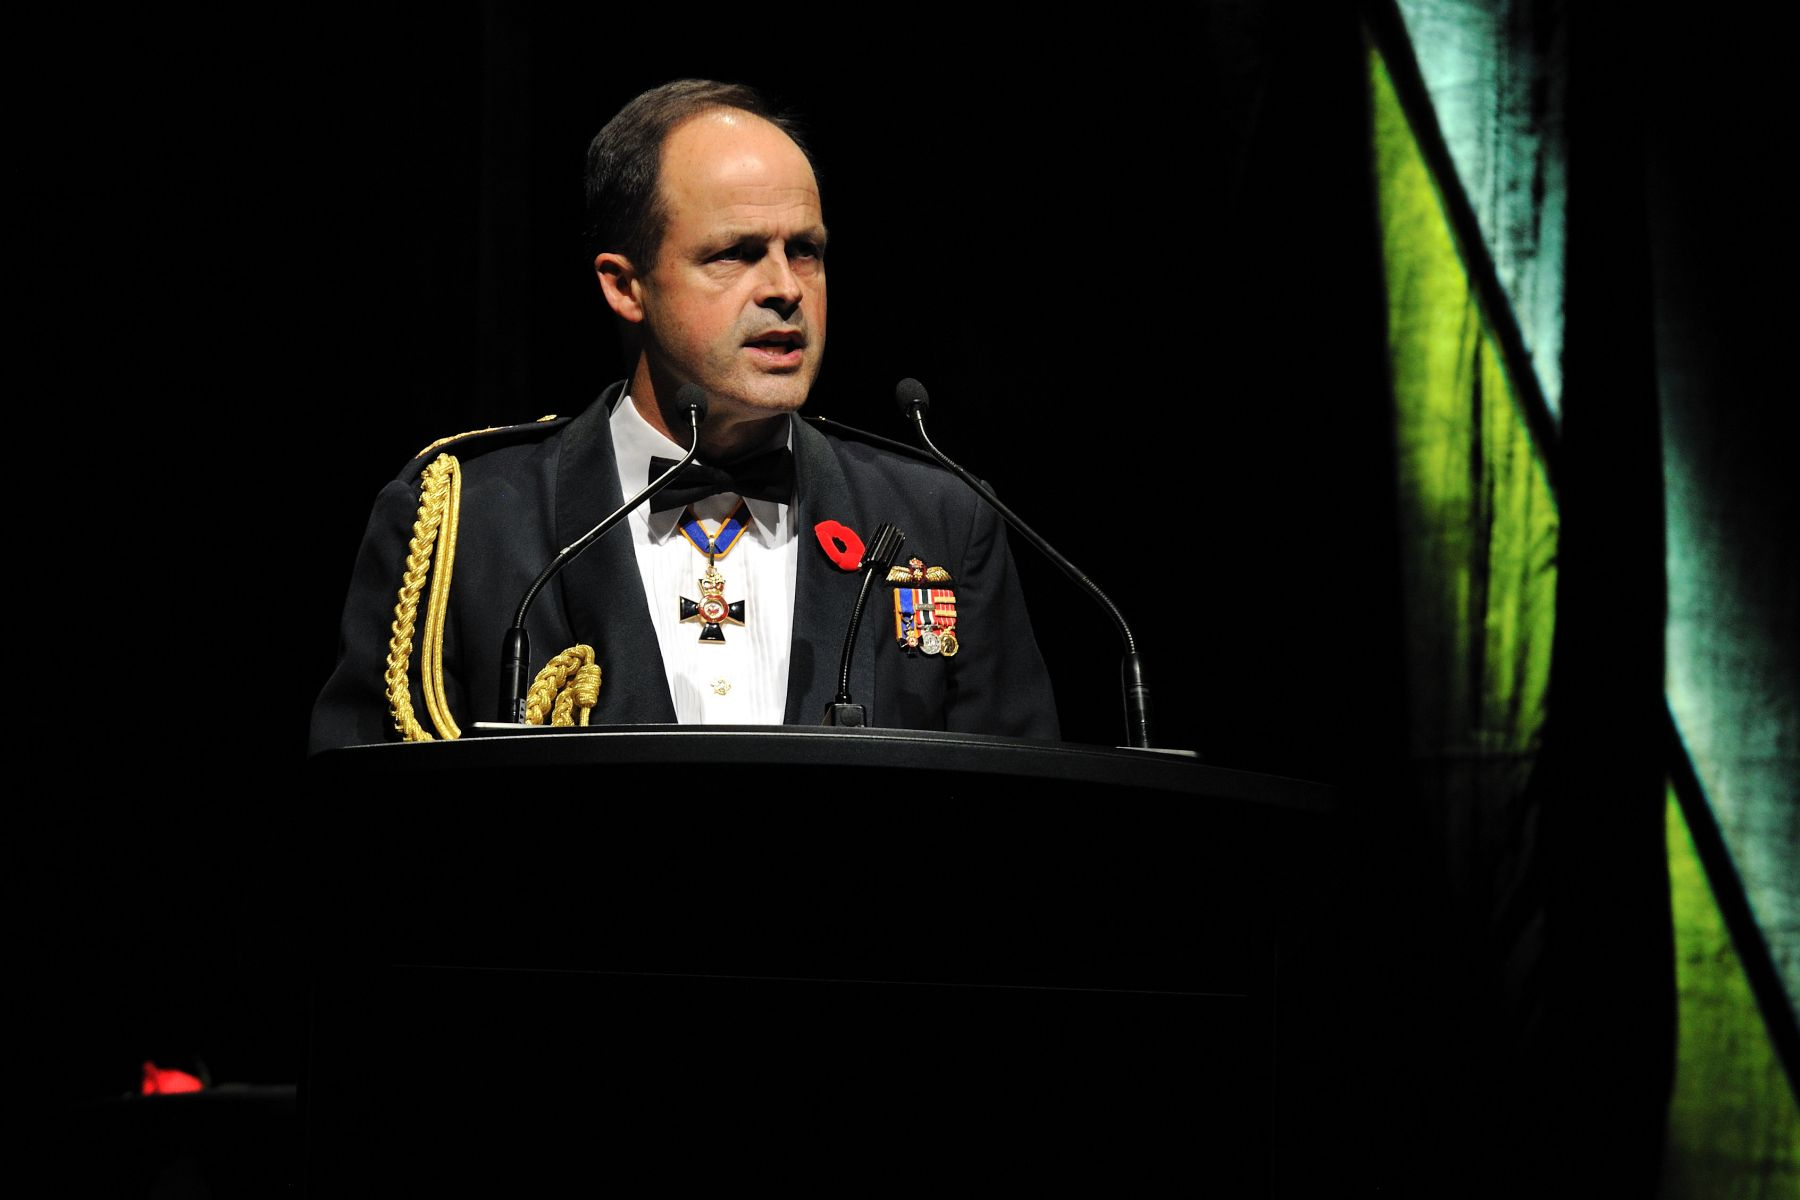 The recently appointed Chief of the Defence Staff General Tom Lawson also delivered a speech.